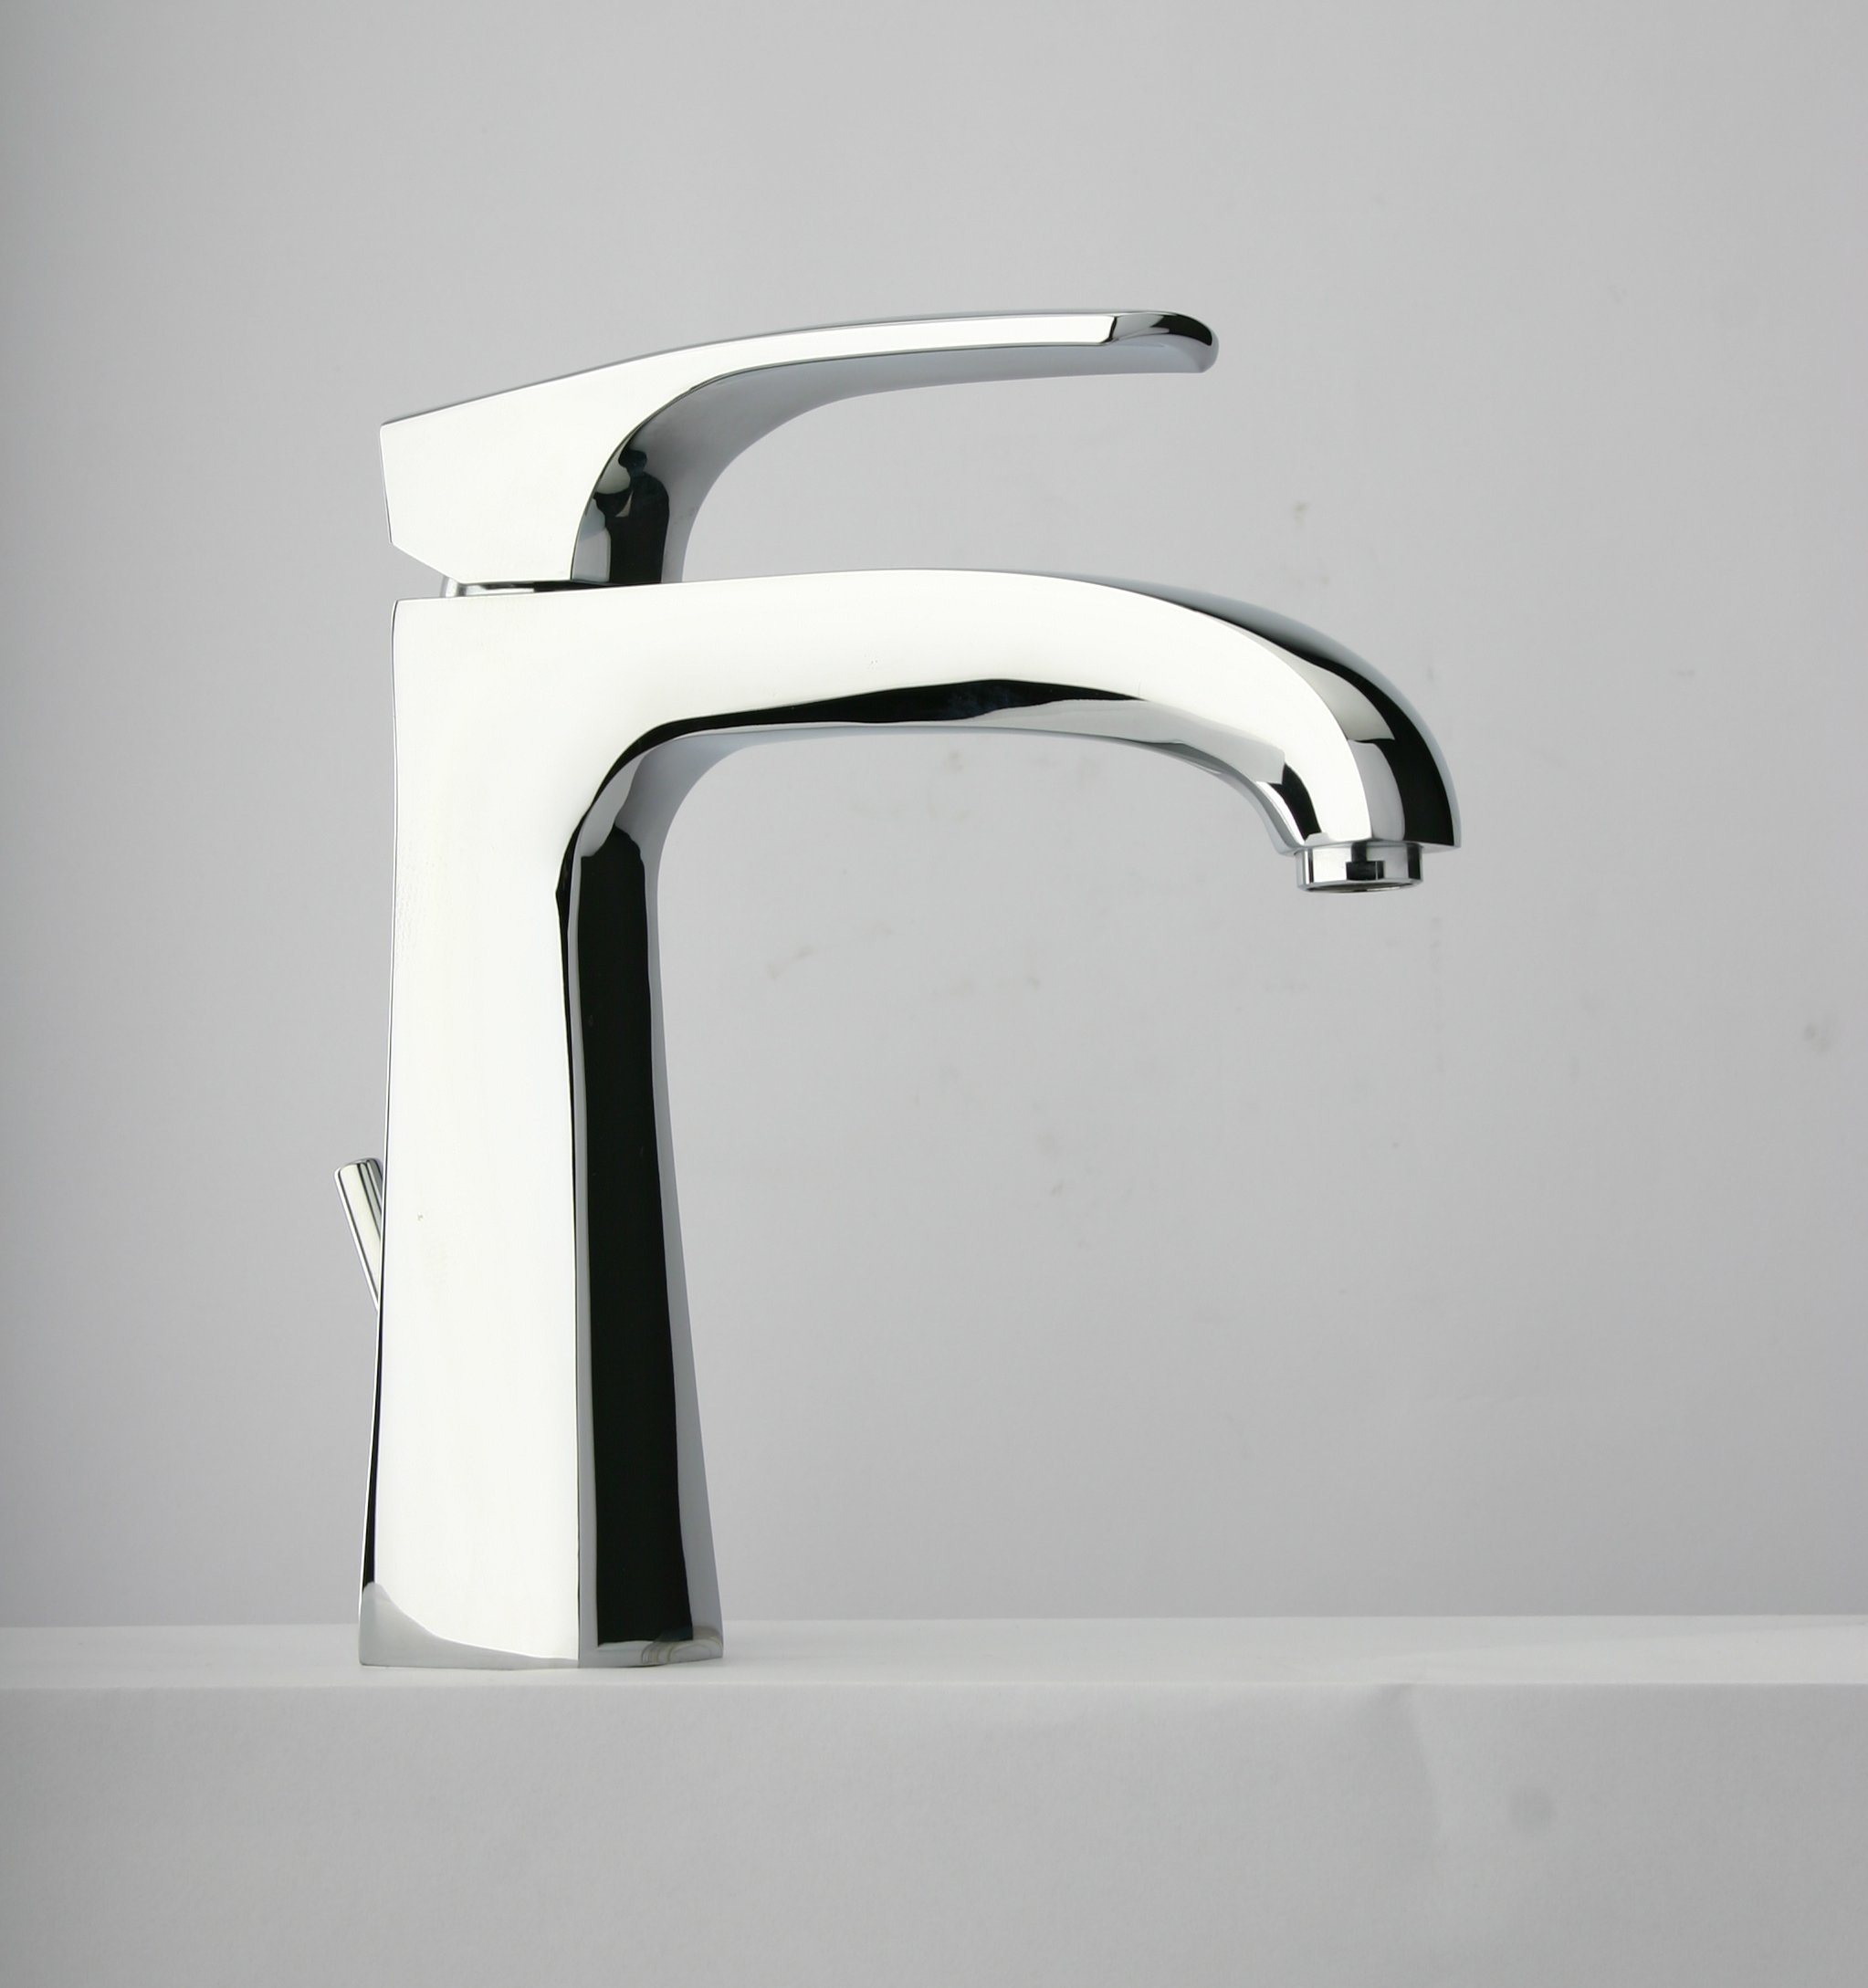 LaToscana by Paini Bathroom Faucets - Lady 89CR211 Single Control Lavatory Faucet - Chrome